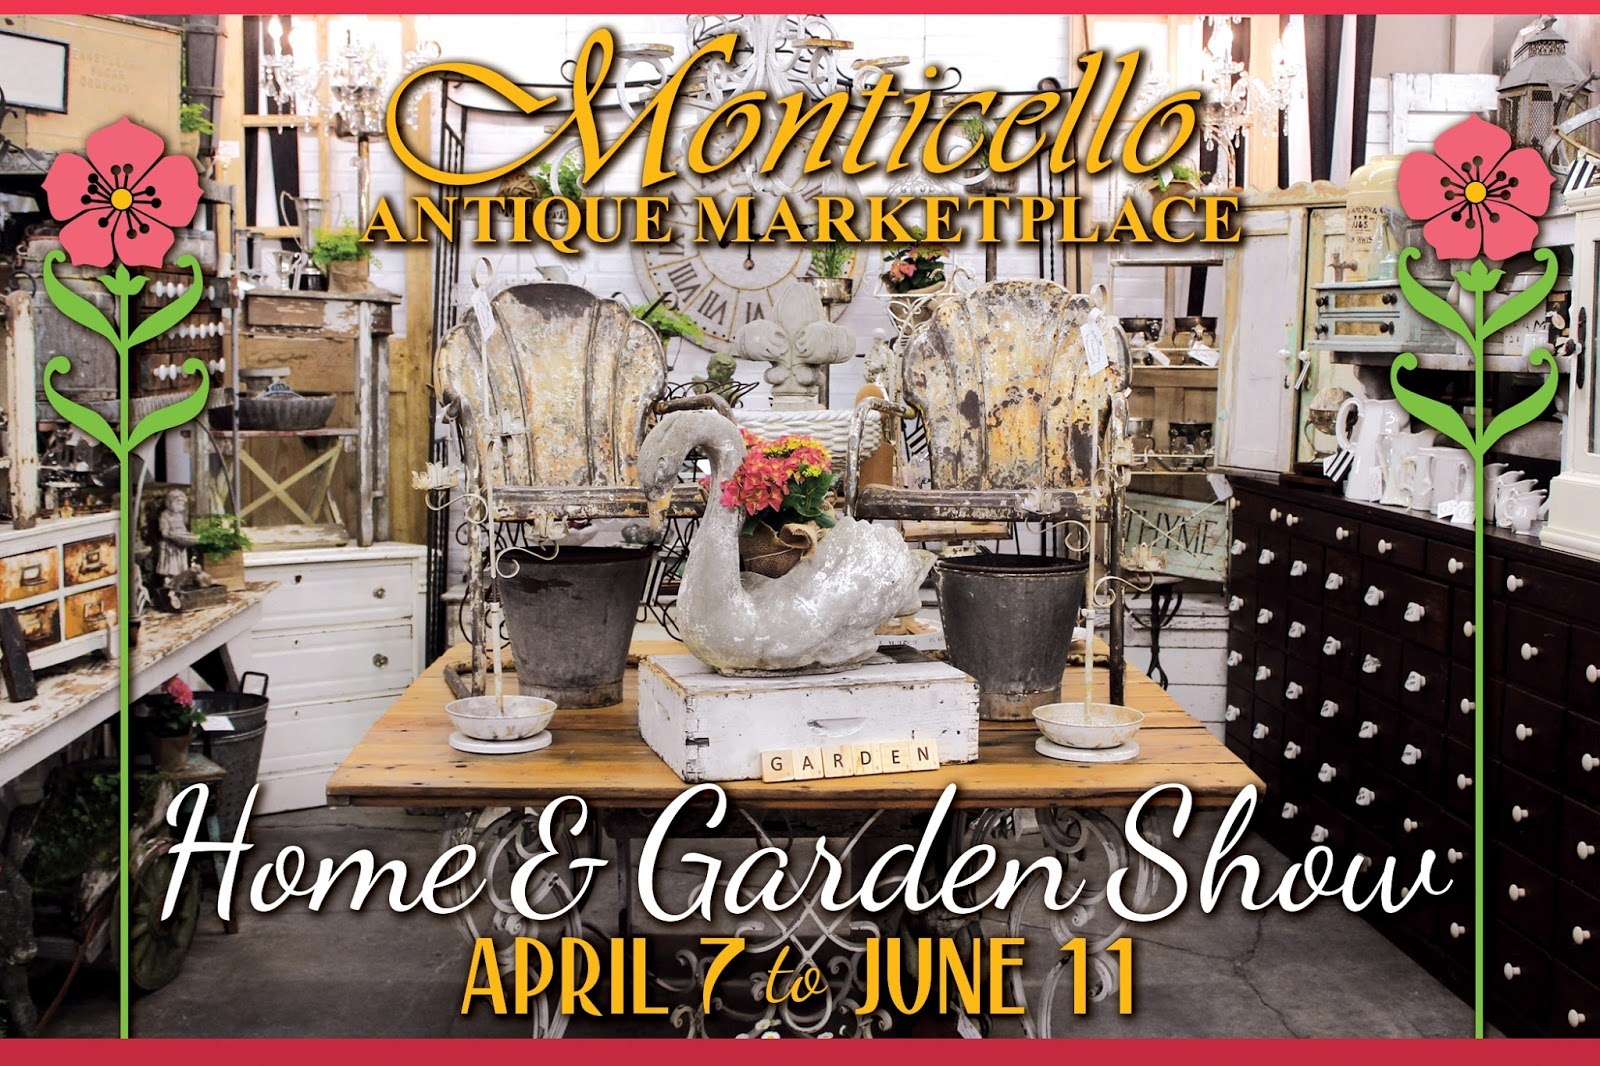 Monticello antique marketplace spring home garden show for Portland spring home and garden show 2017